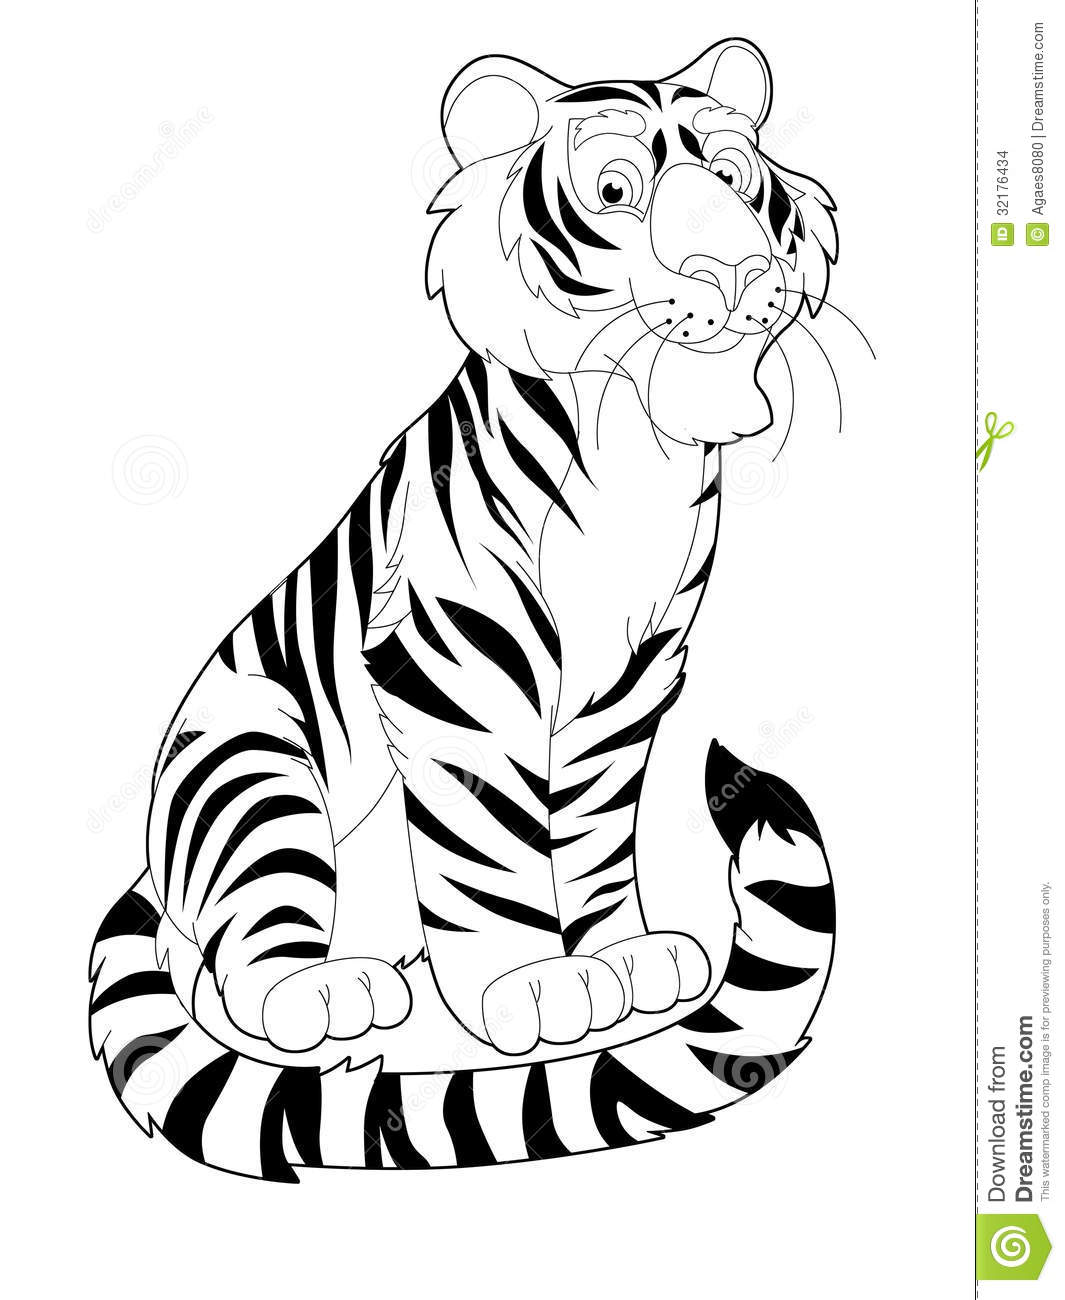 Safari Animals Coloring Pages - GetColoringPages.com | 1300x1065